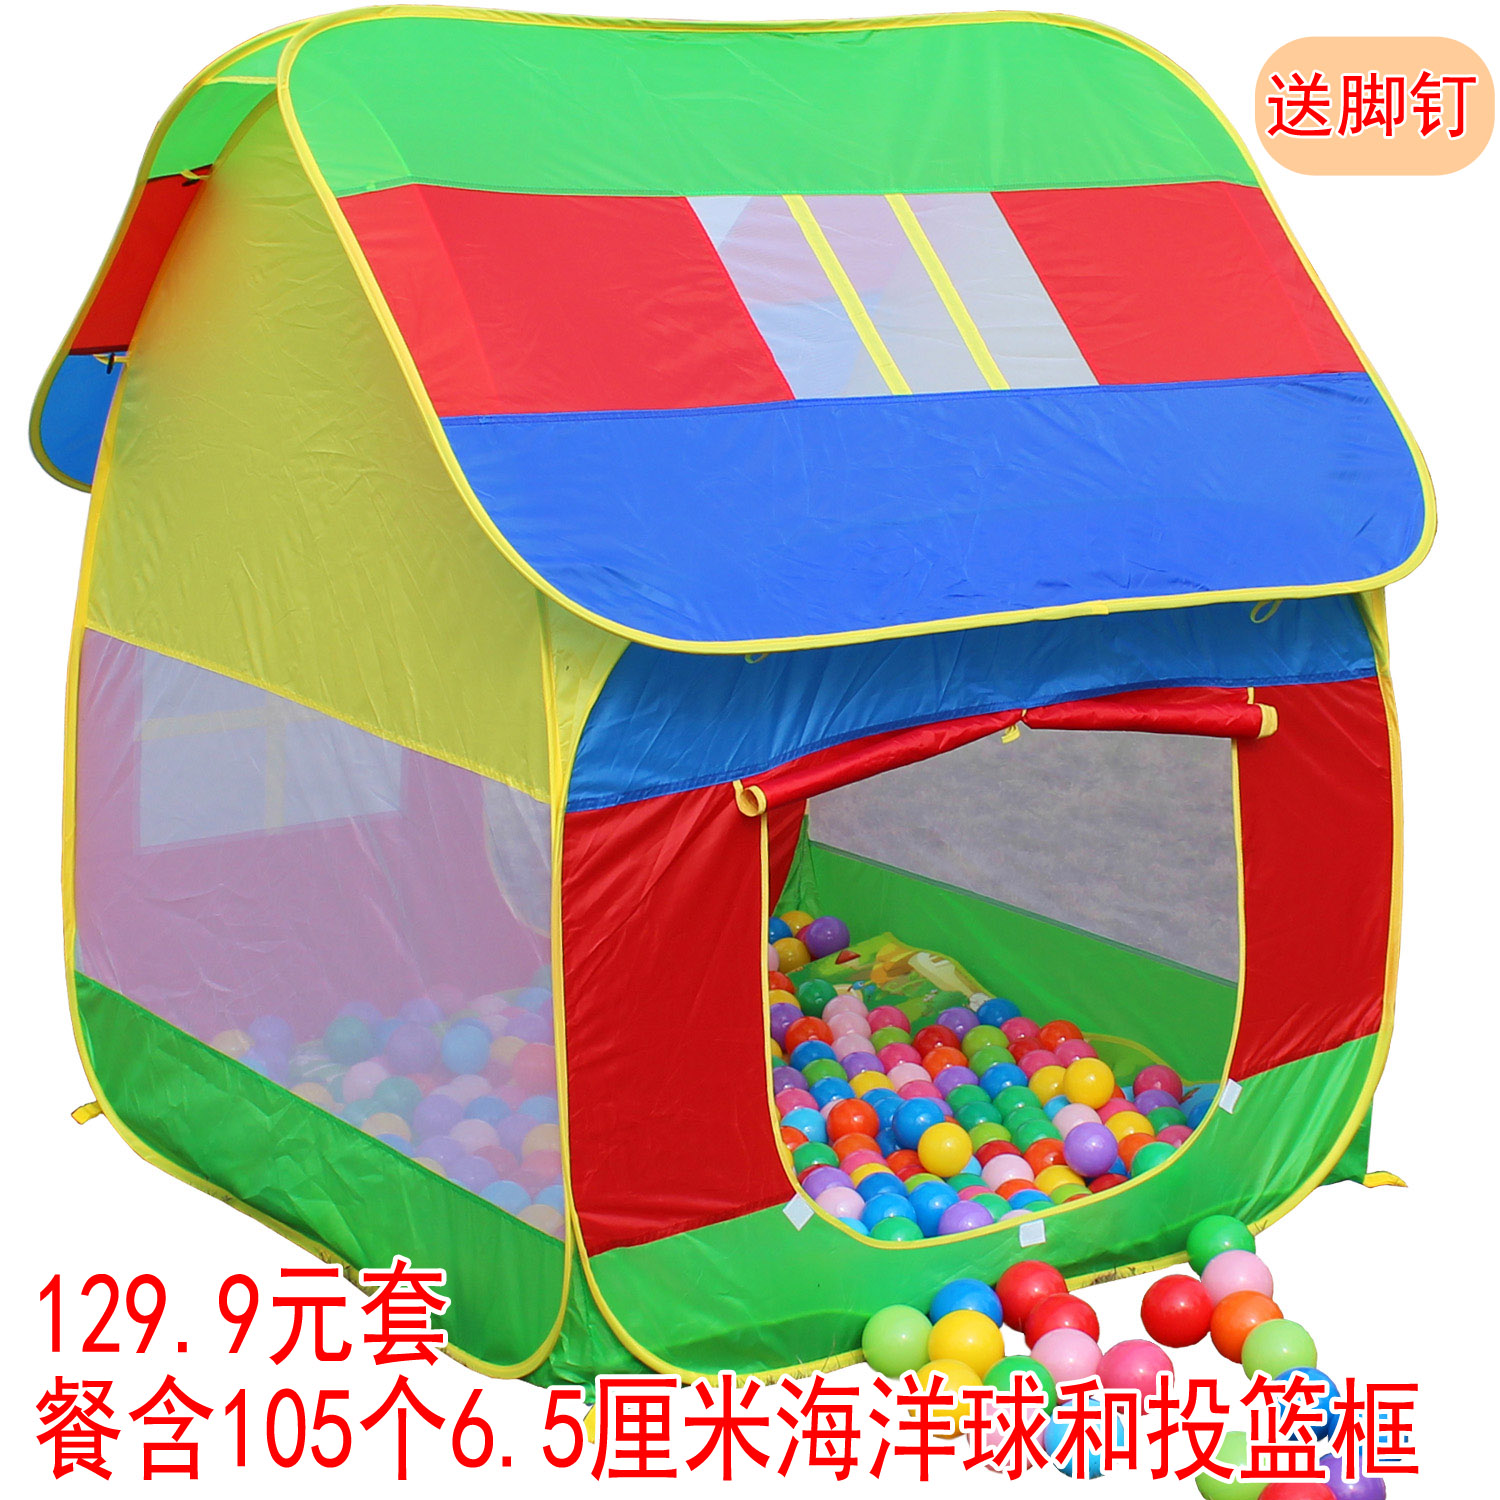 Package email Children's Day presents children's tent House for large portable magic baby game toy UK sent Marine ball